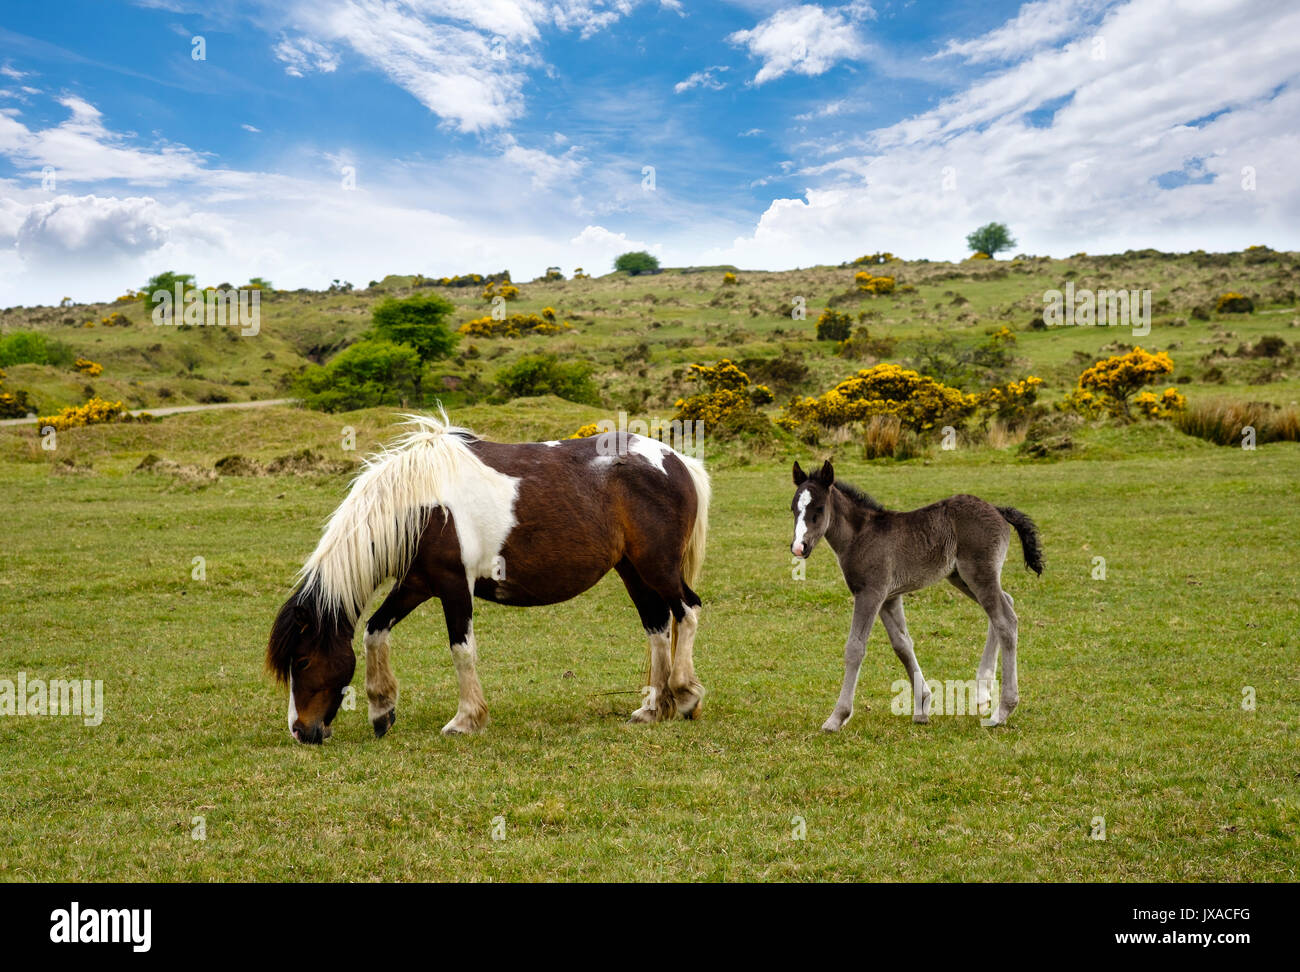 Foal and mare, Bodmin Moor Ponies, Cornwall, England, United Kingdom Stock Photo